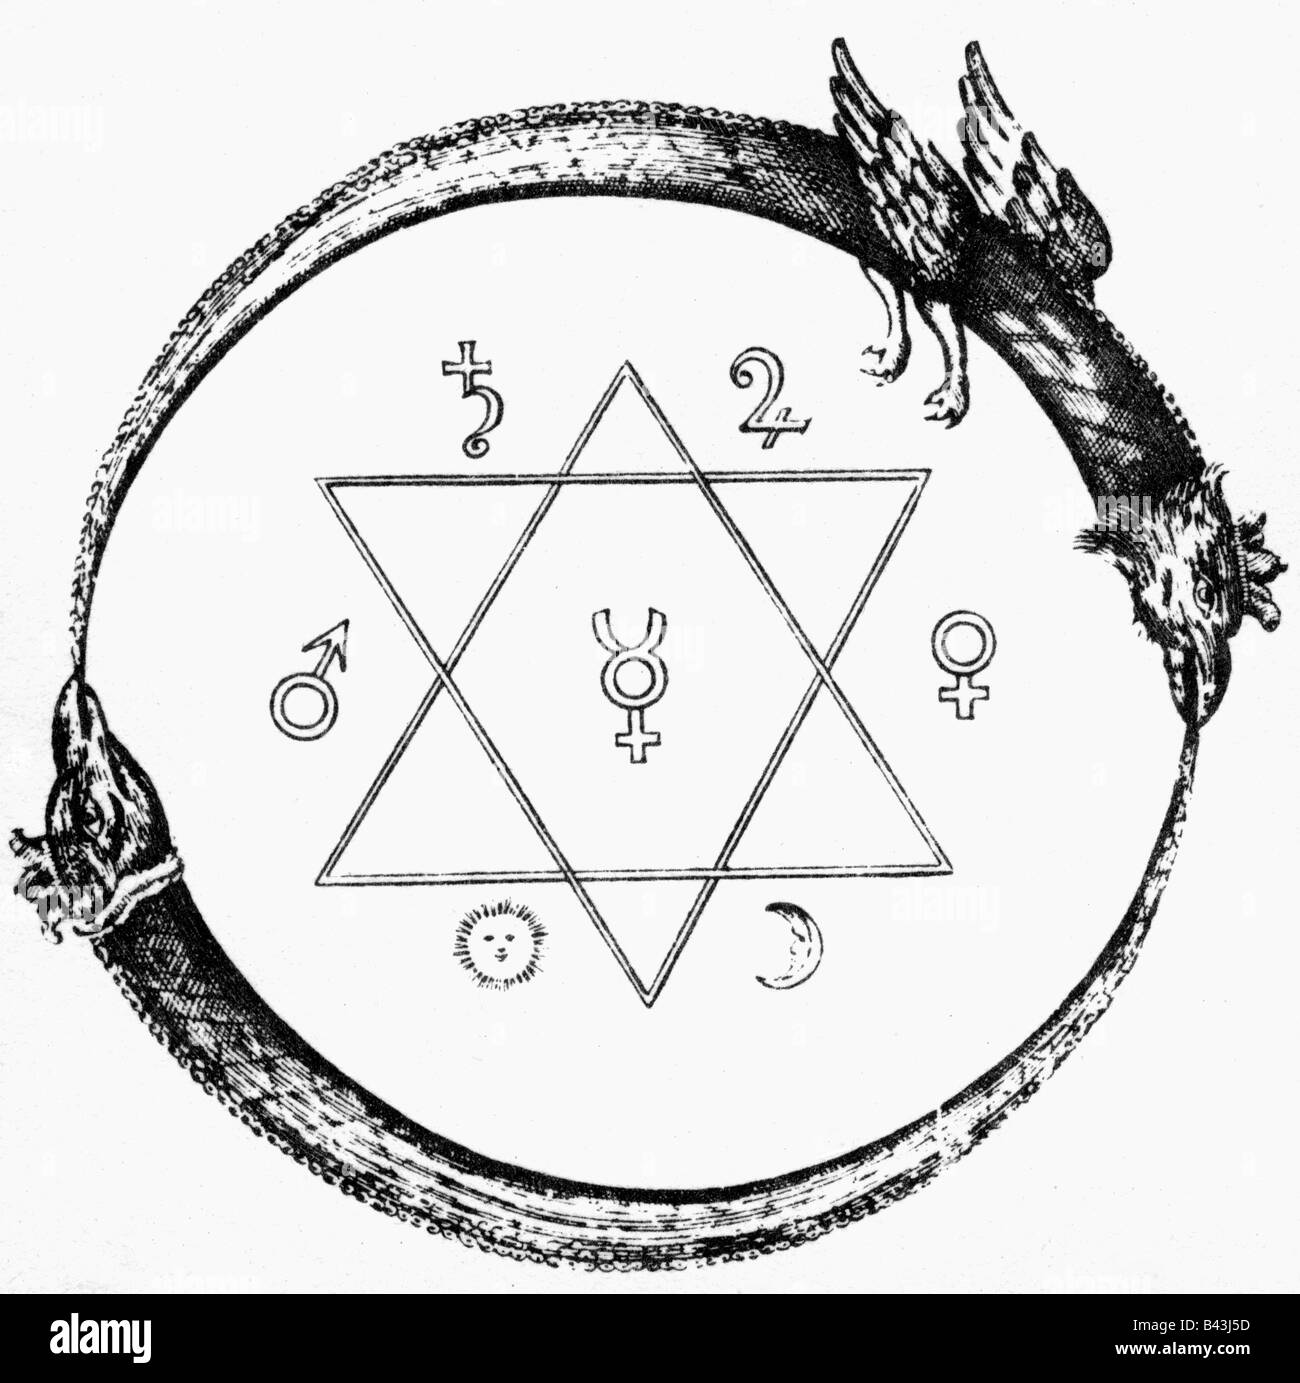 Alchemy Symbols Stock Photos Alchemy Symbols Stock Images Alamy